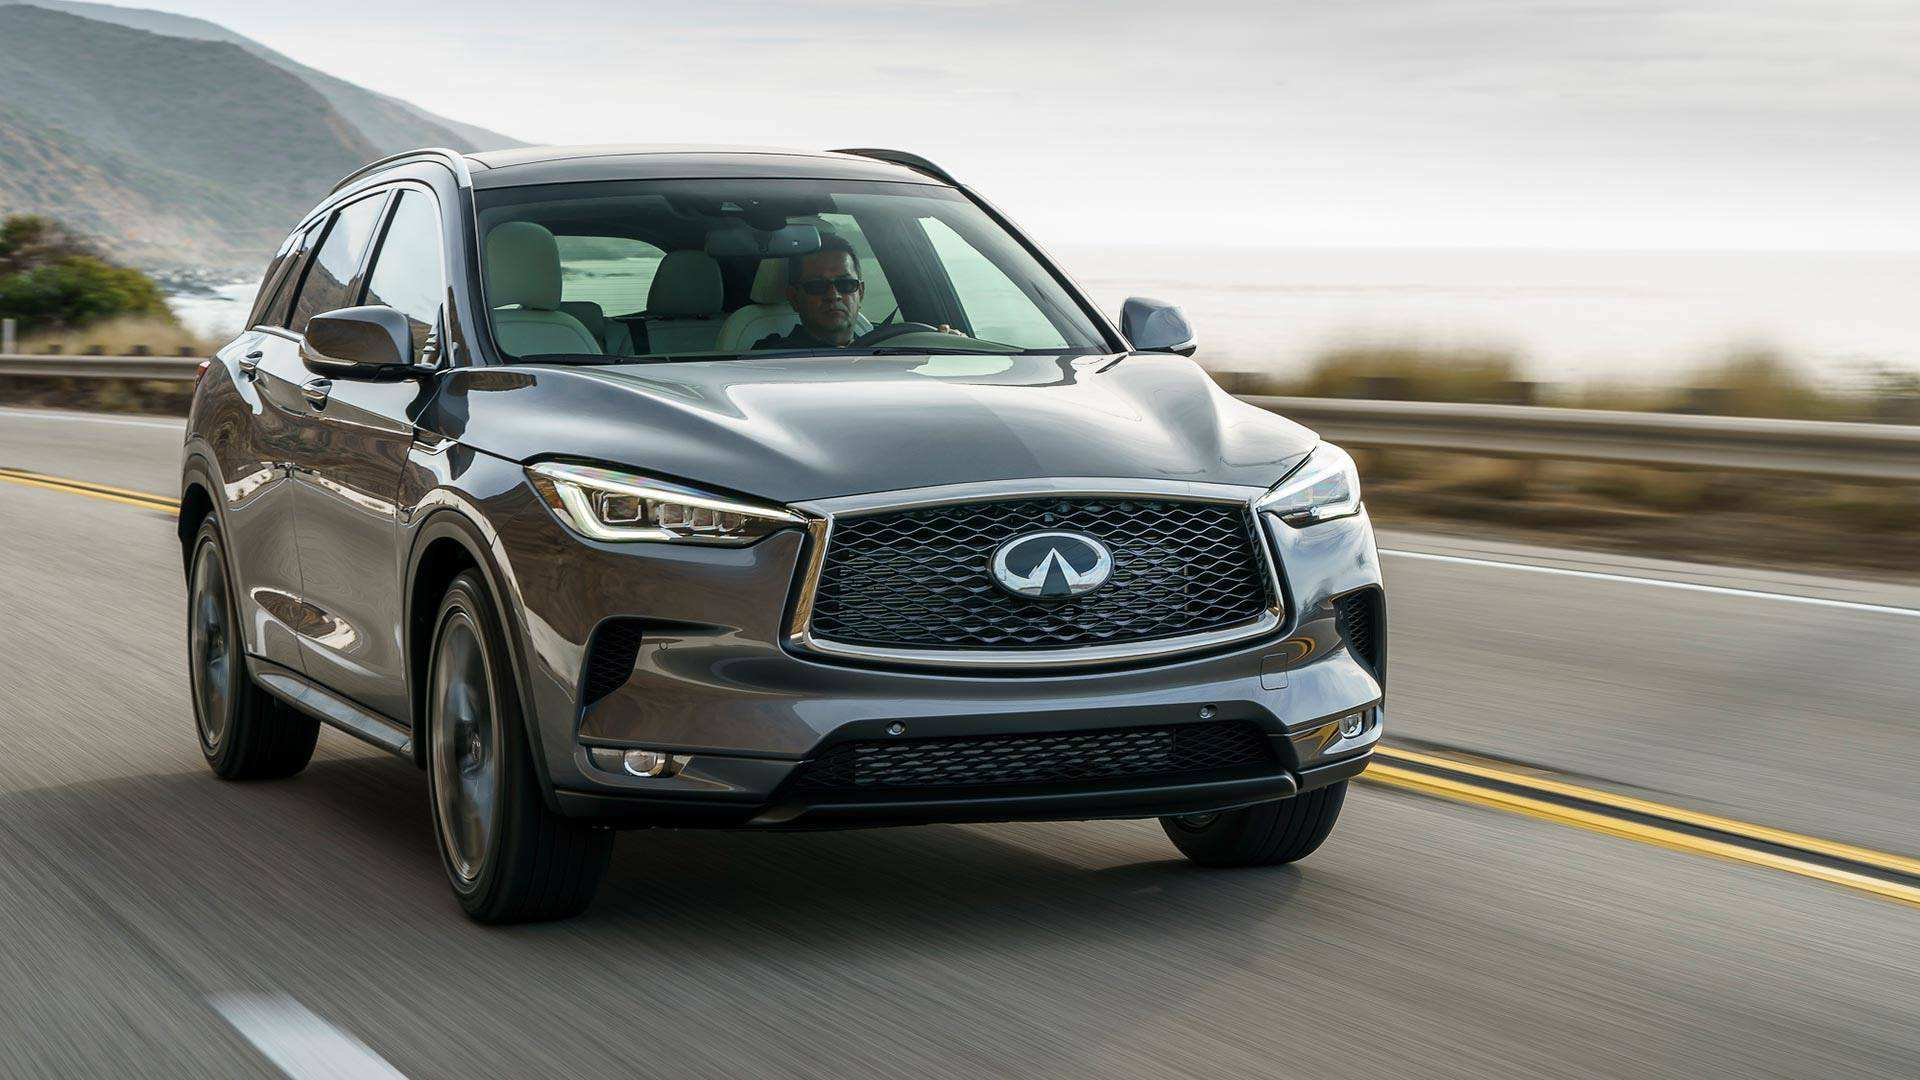 74 The Best 2019 Infiniti Qx50 Weight Configurations